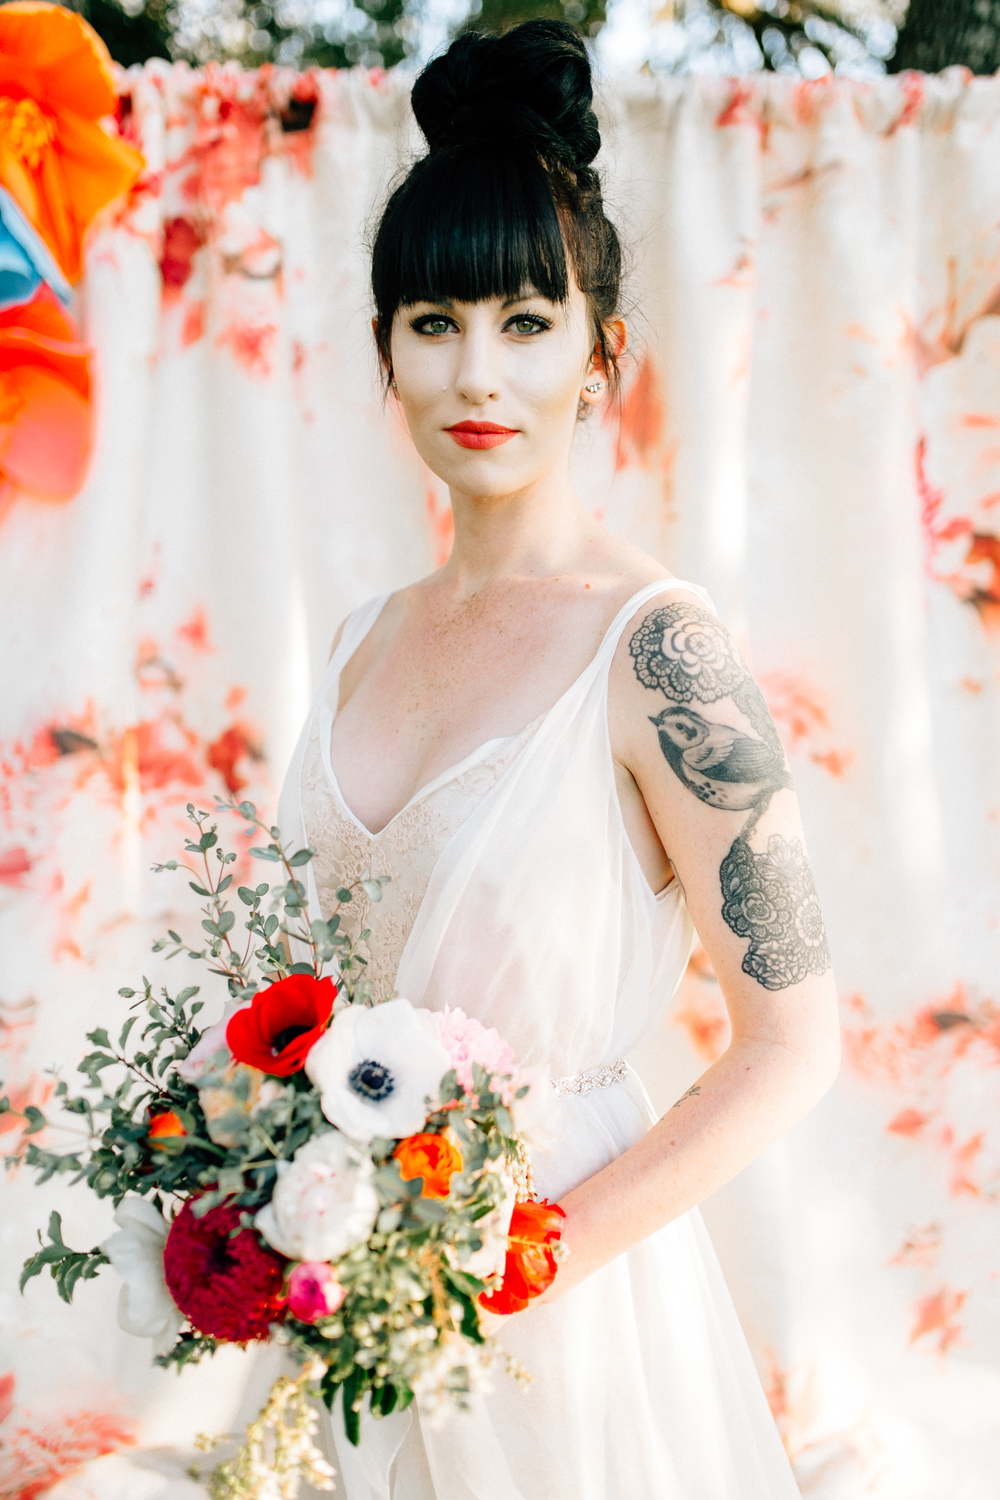 austin wedding floral backdrop rental